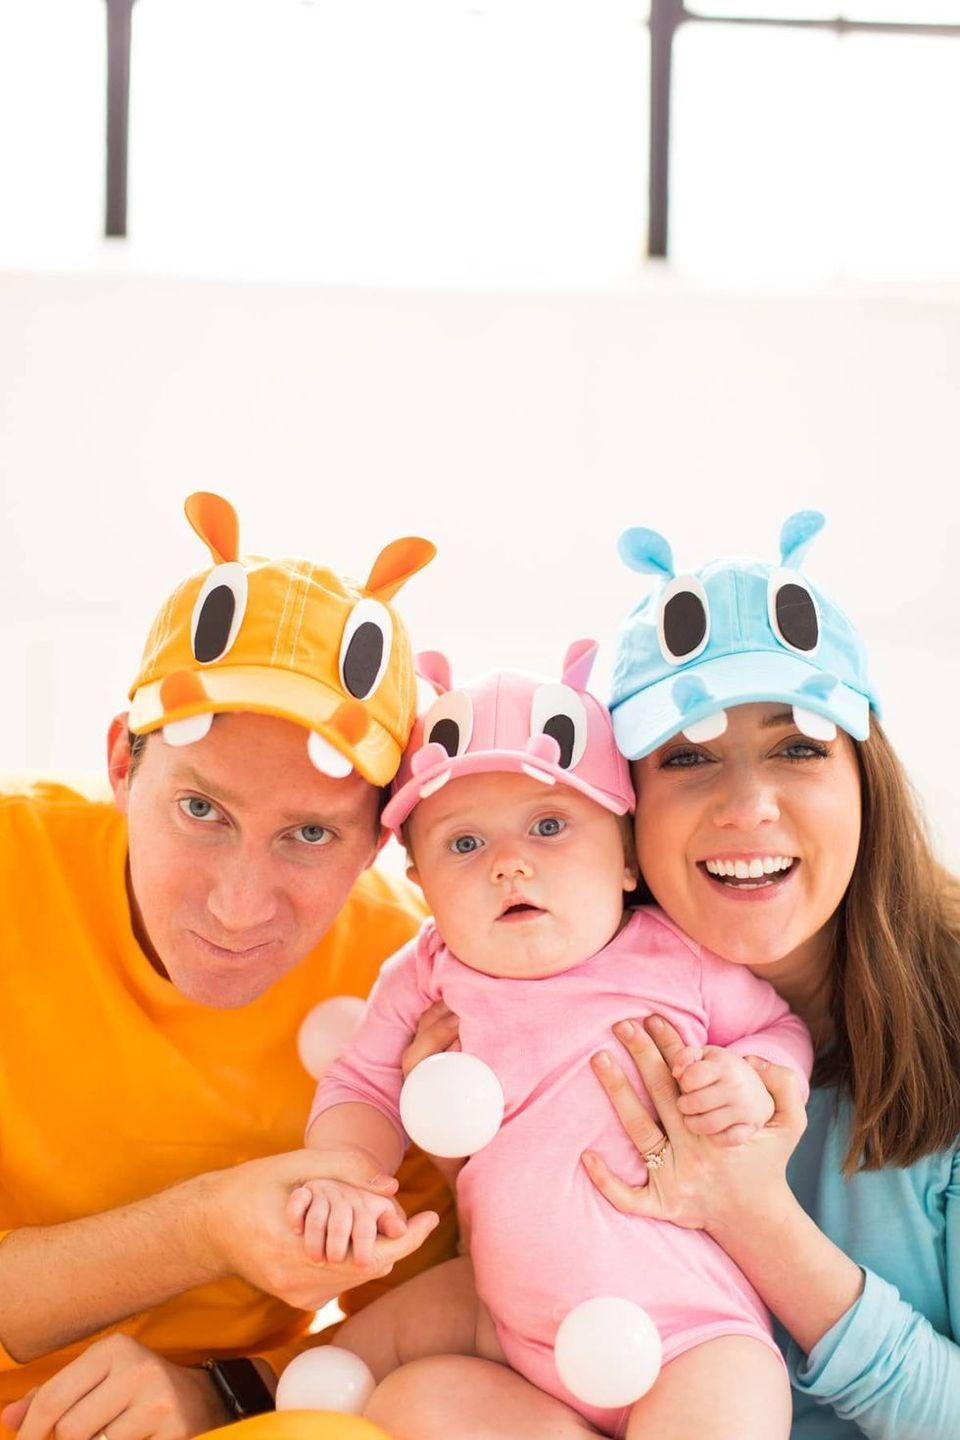 """<p>It's the ultimate throwback costume! Add some foam sheet pieces to a set of colorful baseball caps, and you'll see the """"Hungry Hungry Hippo"""" resemblance in no time.</p><p><strong>See more at <a href=""""https://sugarandcloth.com/our-family-diy-hungry-hippos-costume-idea/"""" rel=""""nofollow noopener"""" target=""""_blank"""" data-ylk=""""slk:Sugar & Cloth"""" class=""""link rapid-noclick-resp"""">Sugar & Cloth</a>.</strong></p><p><a class=""""link rapid-noclick-resp"""" href=""""https://go.redirectingat.com?id=74968X1596630&url=https%3A%2F%2Fwww.walmart.com%2Fsearch%2F%3Fquery%3Dball%2Bpit%2Bballs&sref=https%3A%2F%2Fwww.thepioneerwoman.com%2Fhome-lifestyle%2Fcrafts-diy%2Fg37066817%2Fhalloween-costumes-for-3-people%2F"""" rel=""""nofollow noopener"""" target=""""_blank"""" data-ylk=""""slk:SHOP BALL PIT BALLS"""">SHOP BALL PIT BALLS</a></p>"""